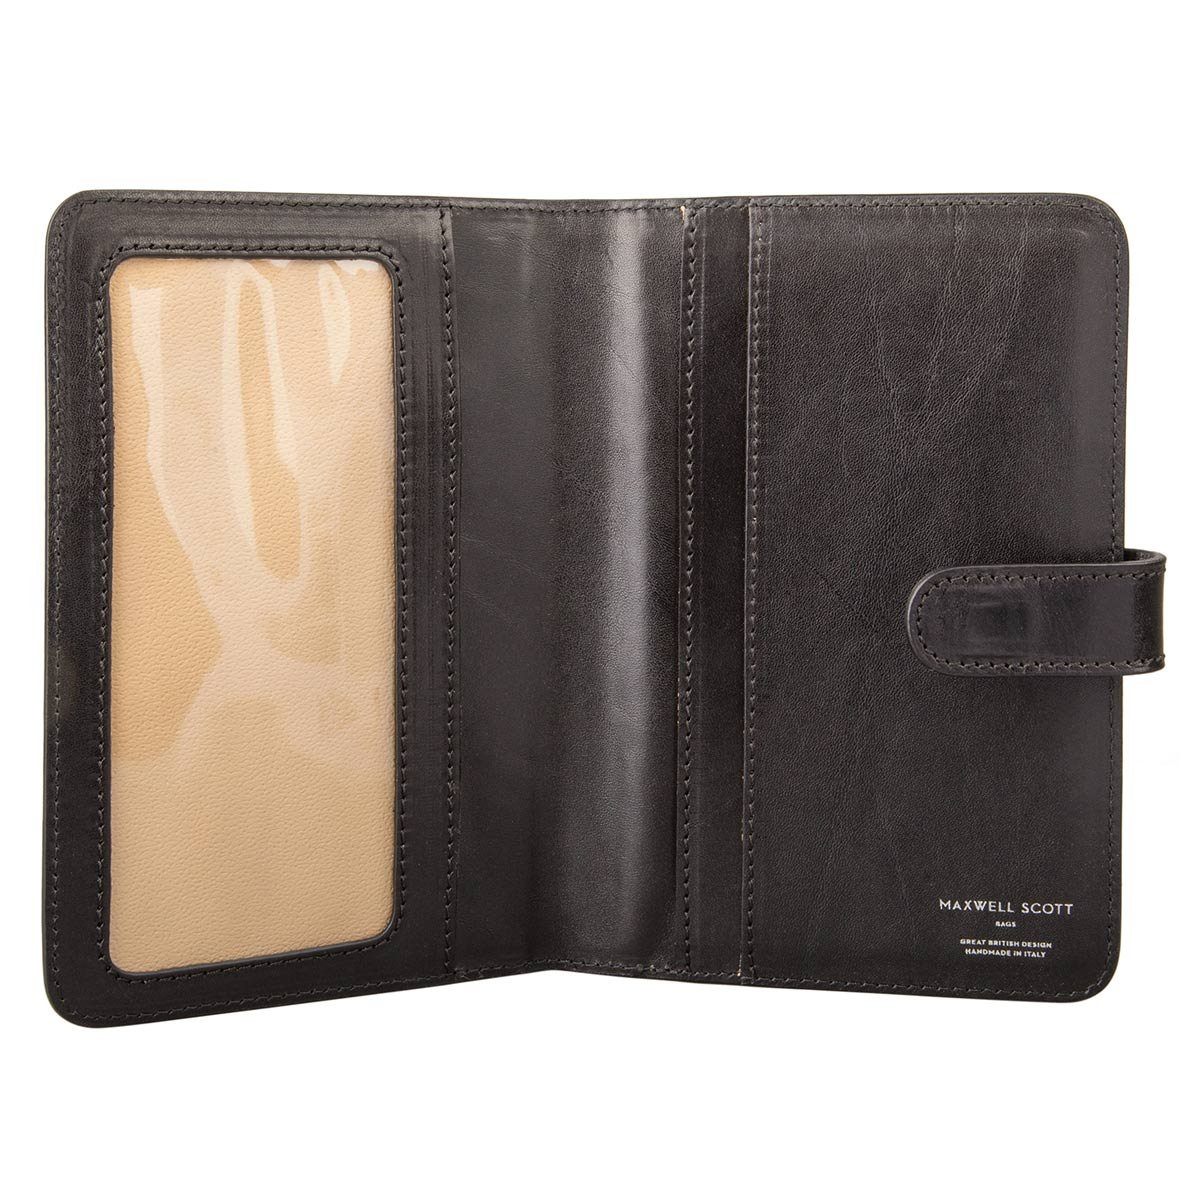 Maxwell Scott Personalized Black Leather Travel Document Wallet (Vieste) by Maxwell Scott Bags